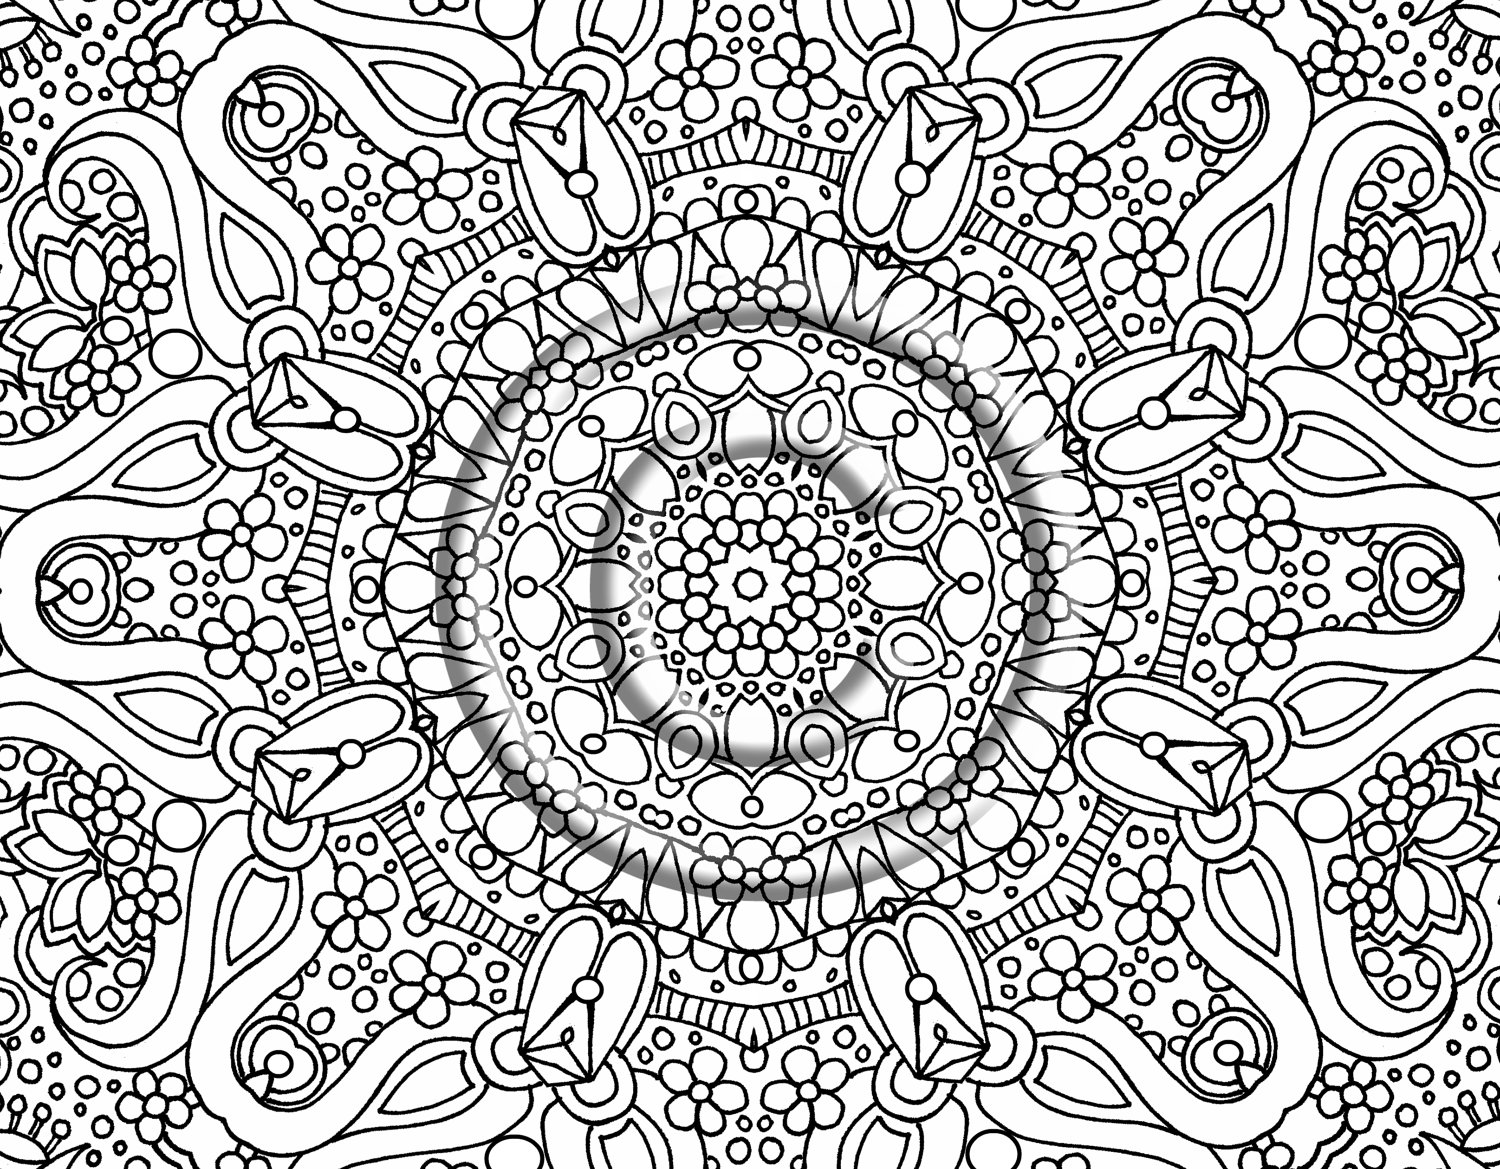 flower detailed coloring pages - photo#3